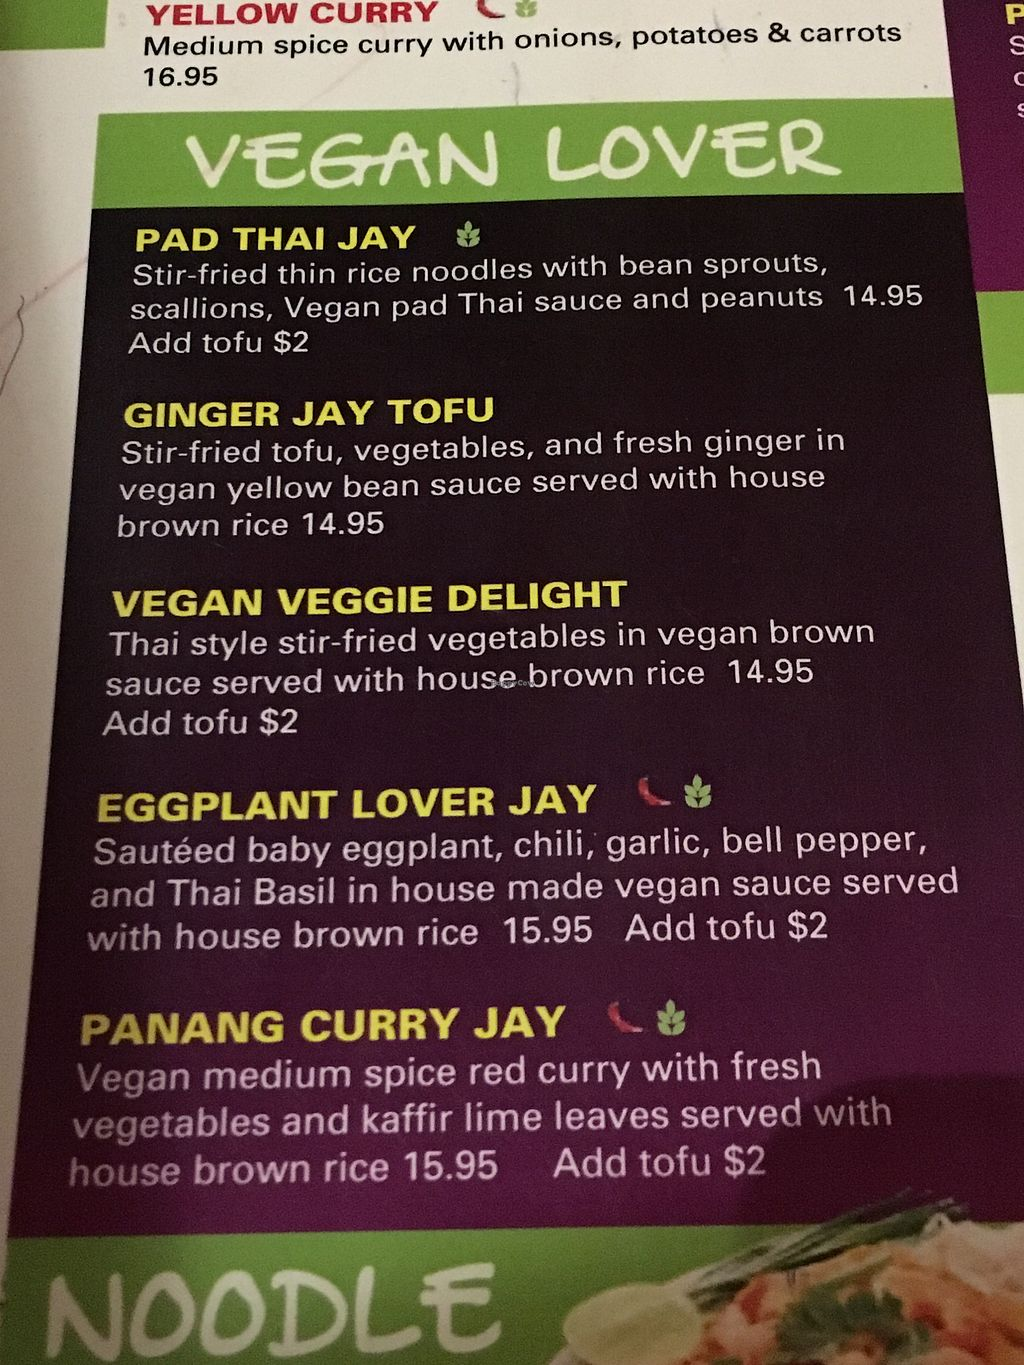 """Photo of Bangkok Happy Bowl  by <a href=""""/members/profile/Annebumble"""">Annebumble</a> <br/>Menu April '18 <br/> April 15, 2018  - <a href='/contact/abuse/image/89786/386074'>Report</a>"""